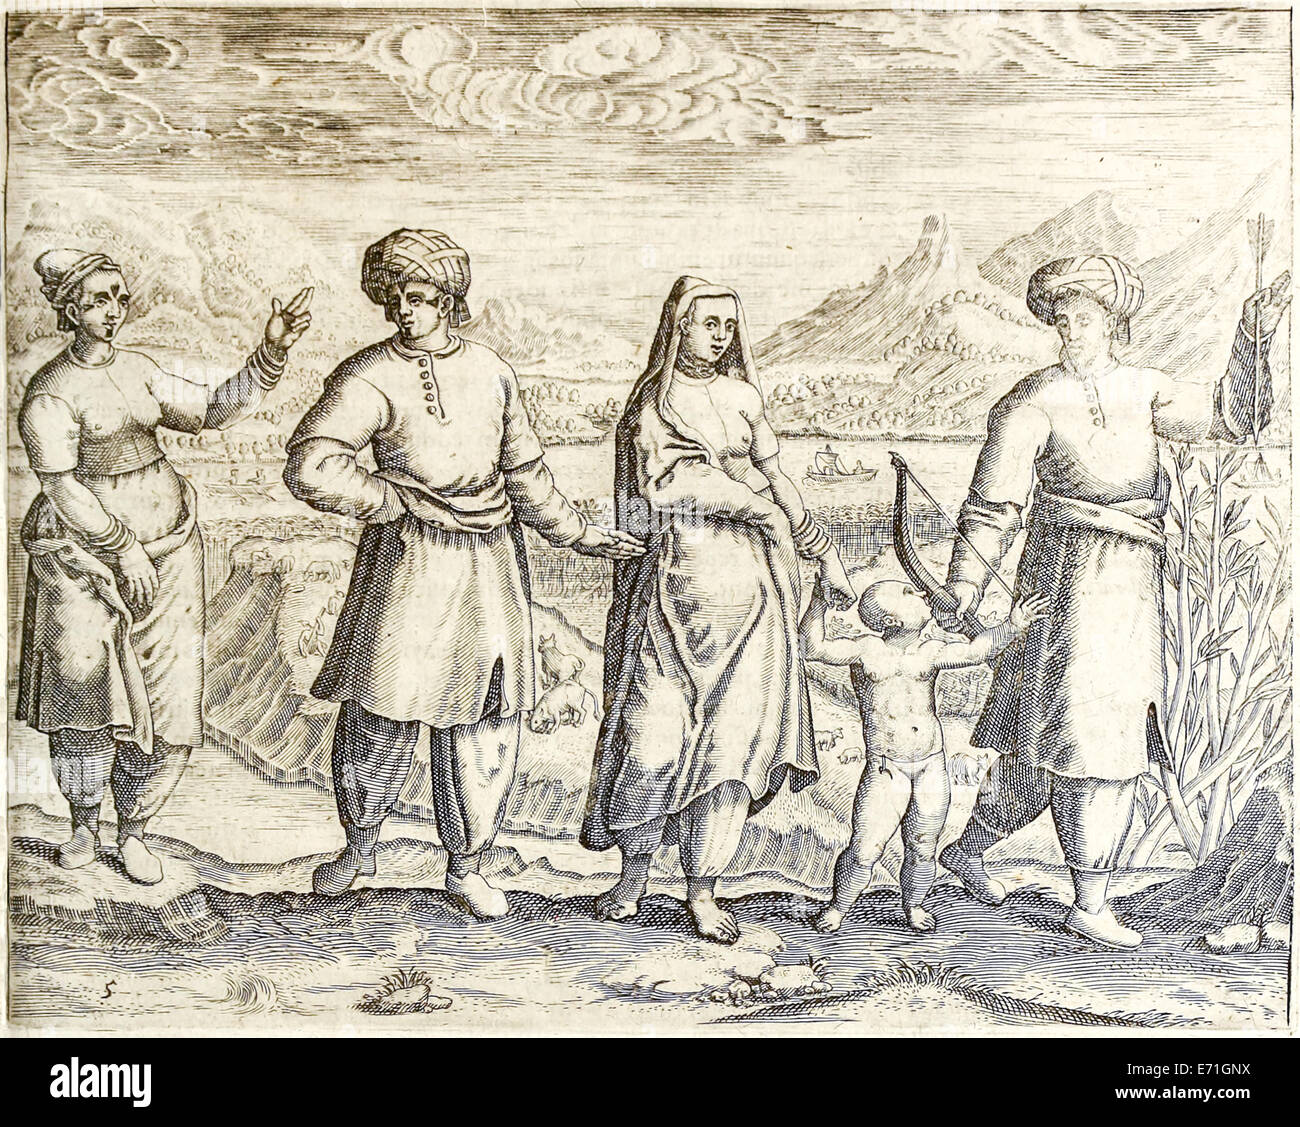 "Arab and Ethiopian inhabitants of Goa from ""Indiae Orientalis"" 1599 by  Theodor de Bry. See description for further information."